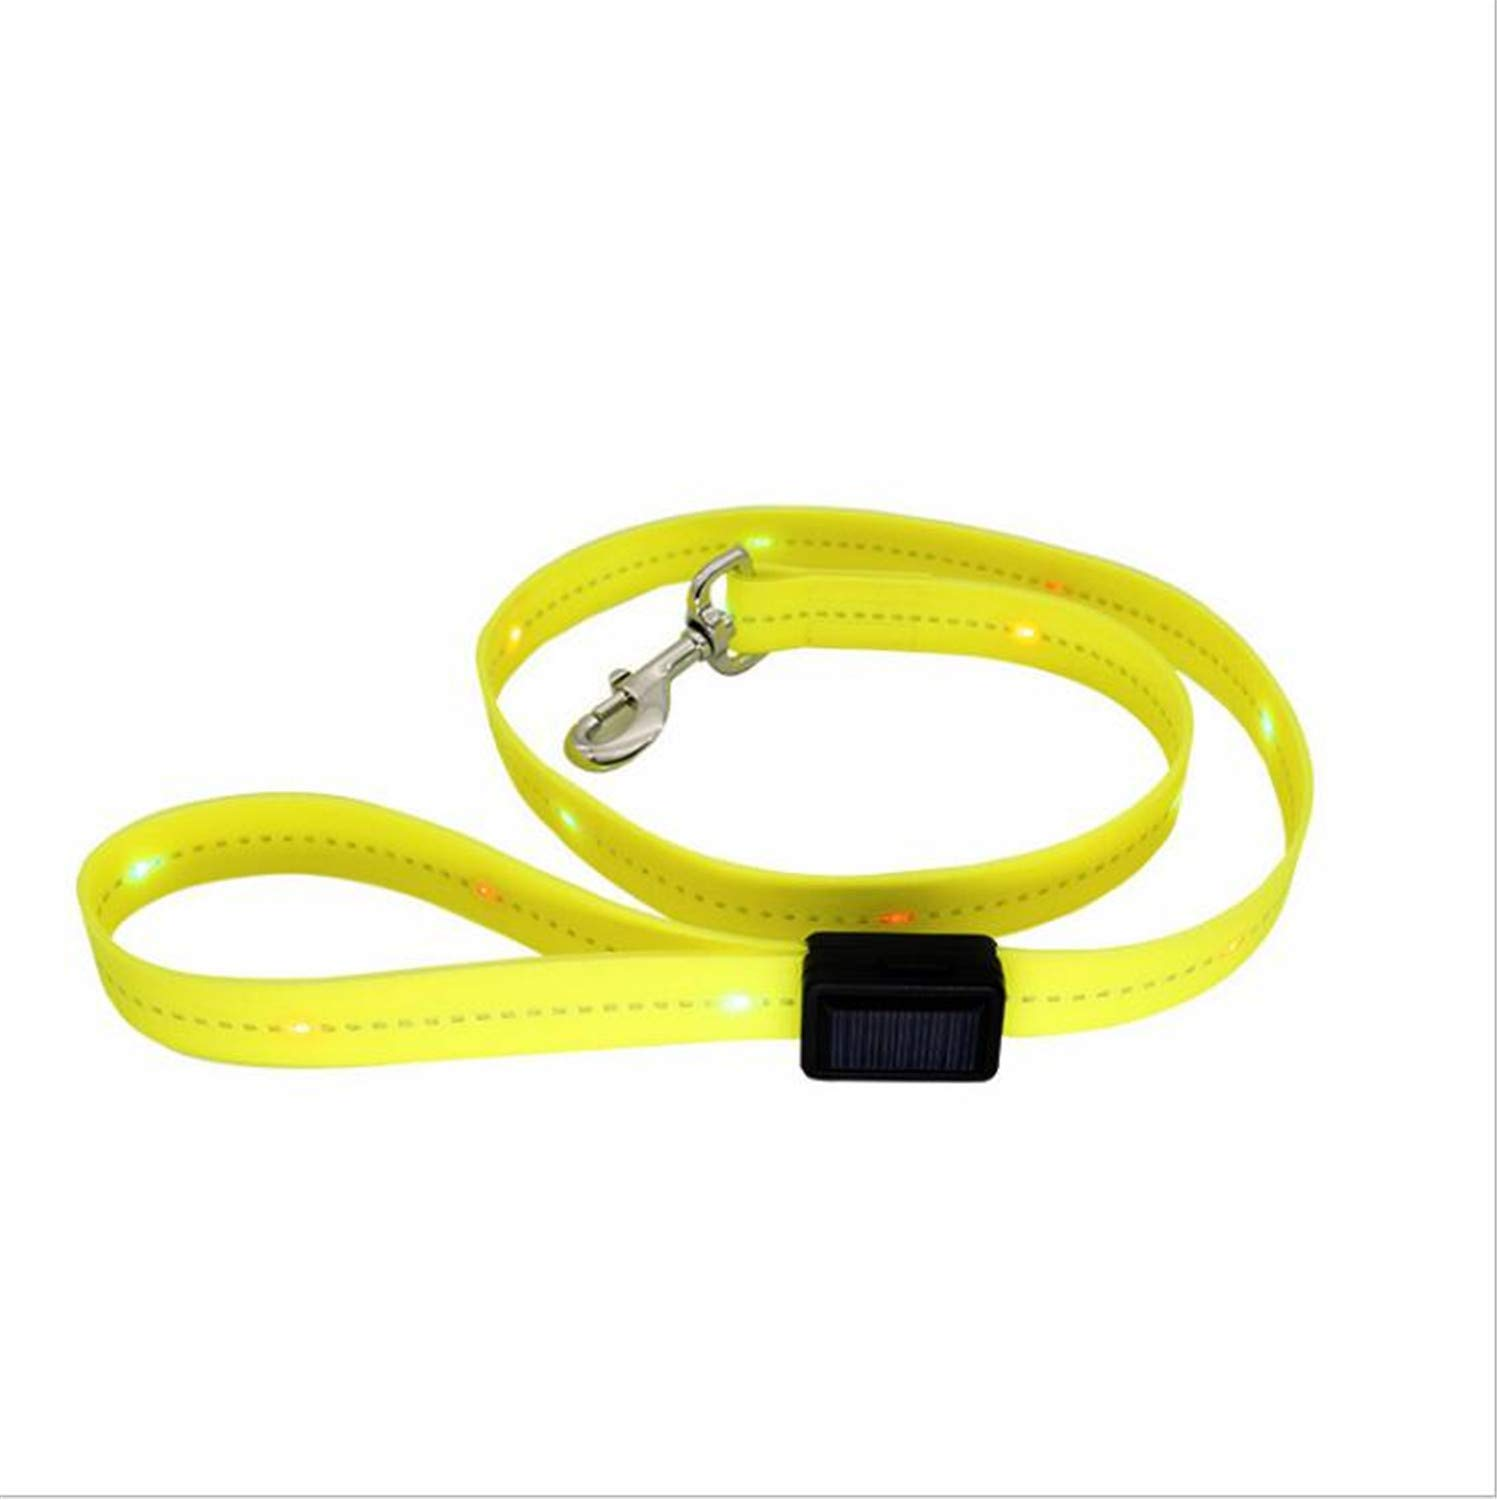 New PVC Charging LED Lighting Dog Leash, Traction Rope Not Easy to Mold, Waterproof, Easy to Clean, Suitable for All Types of Pets